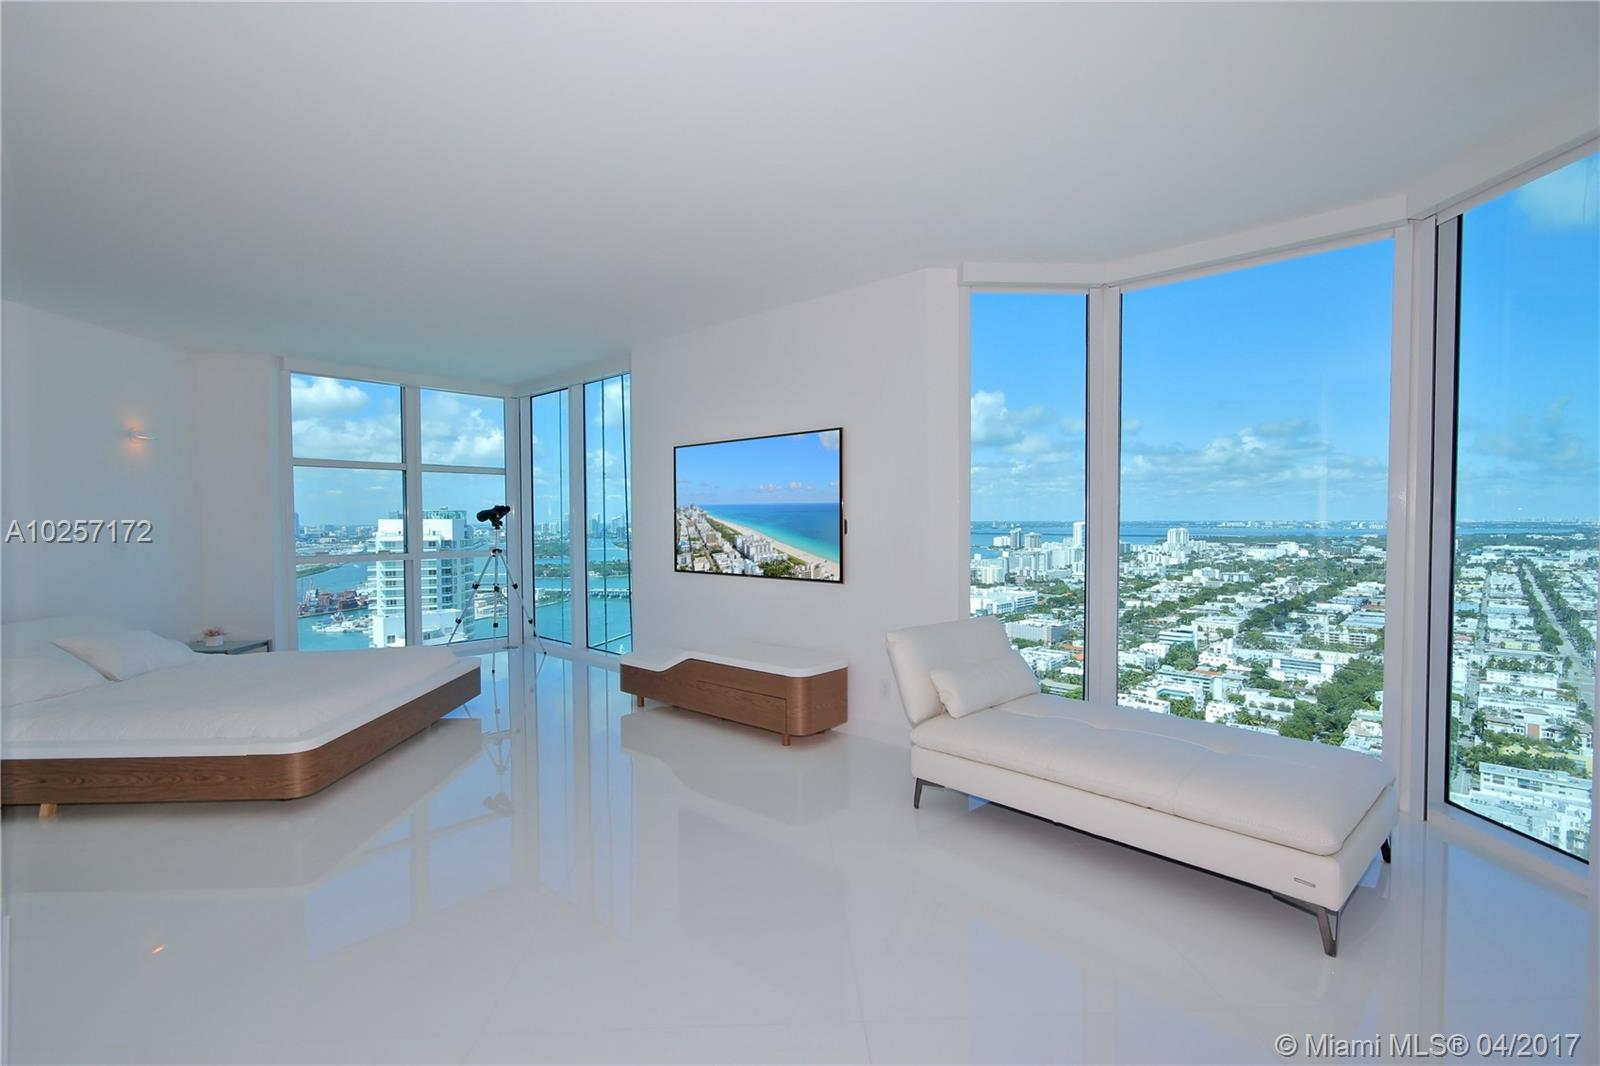 300 Pointe dr-LPH2 miami-beach--fl-33139-a10257172-Pic16